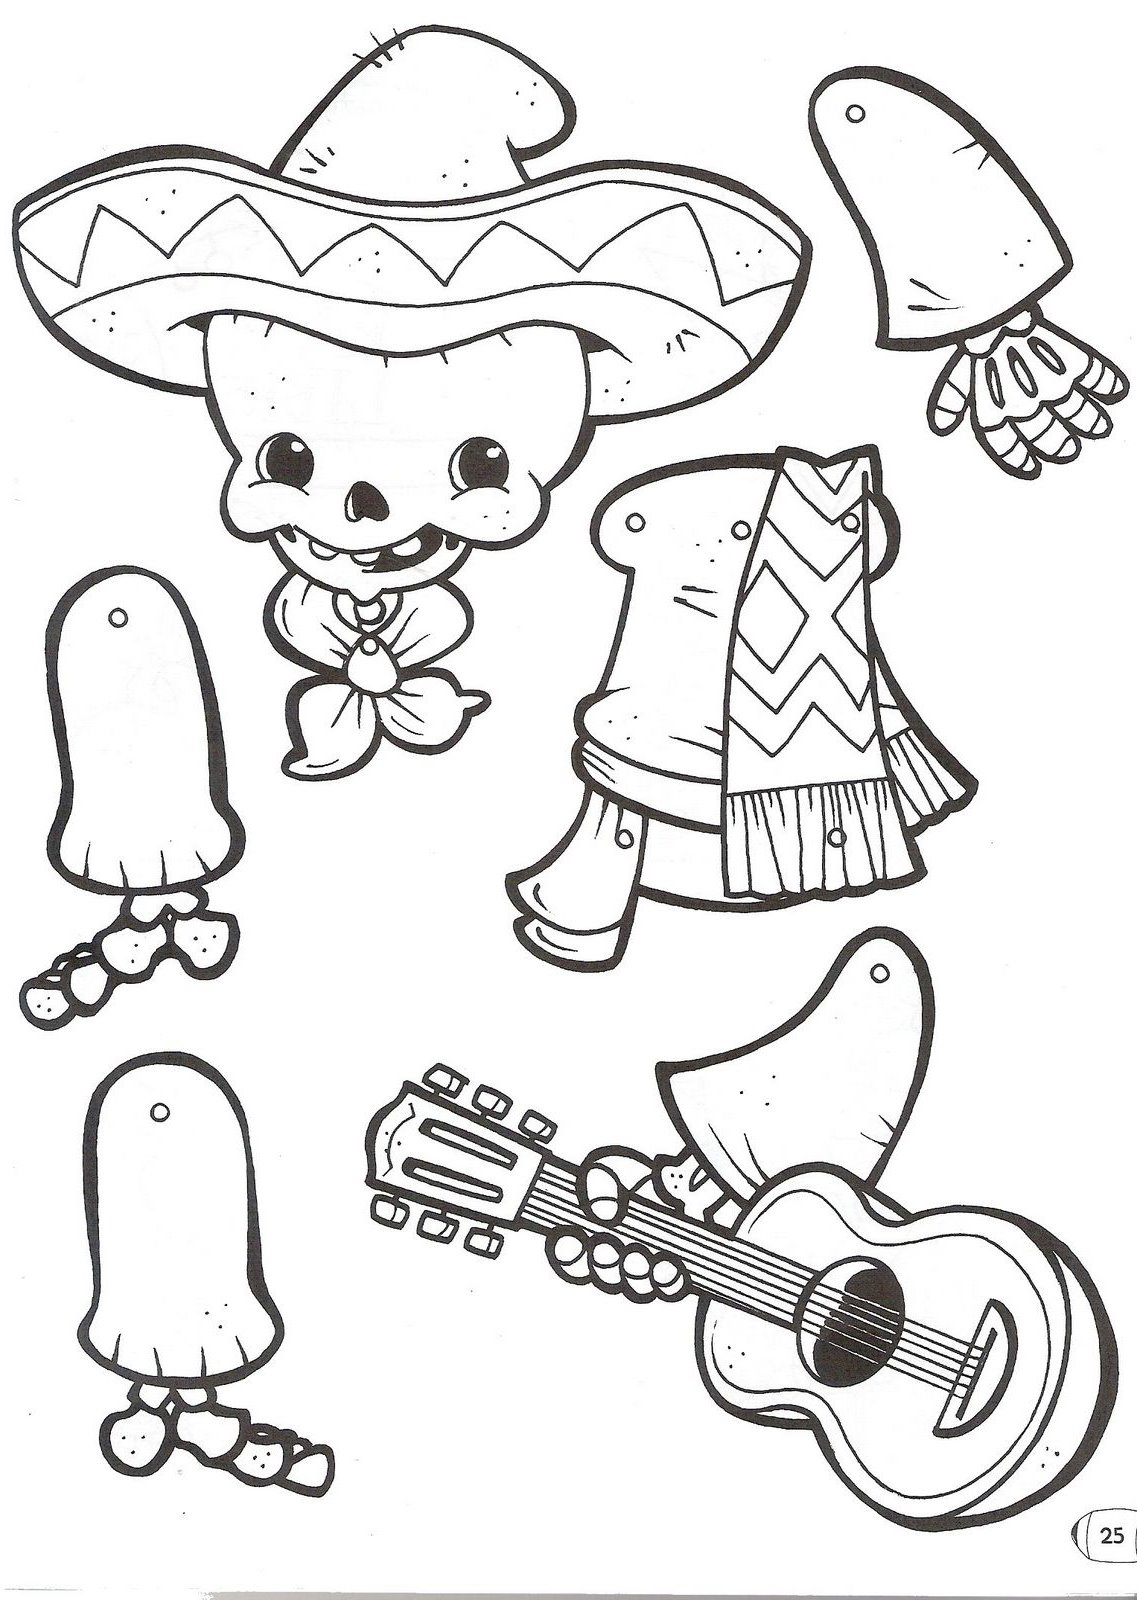 Mario As Calaveritas